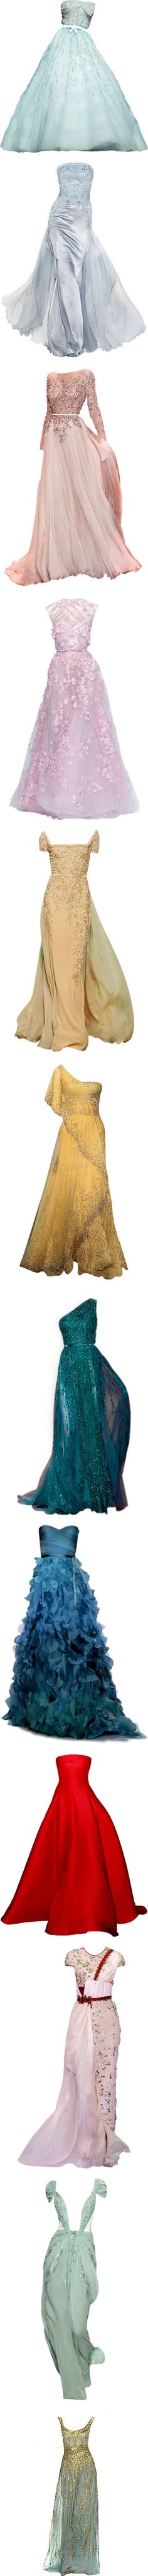 Disney Princess - Gowns by giovanna1995 on Polyvore featuring dresses, gowns, long dresses, vestidos, green dress, long green dress, long green evening dress, green ball gown, ballgowns and zuhair murad evening dresses